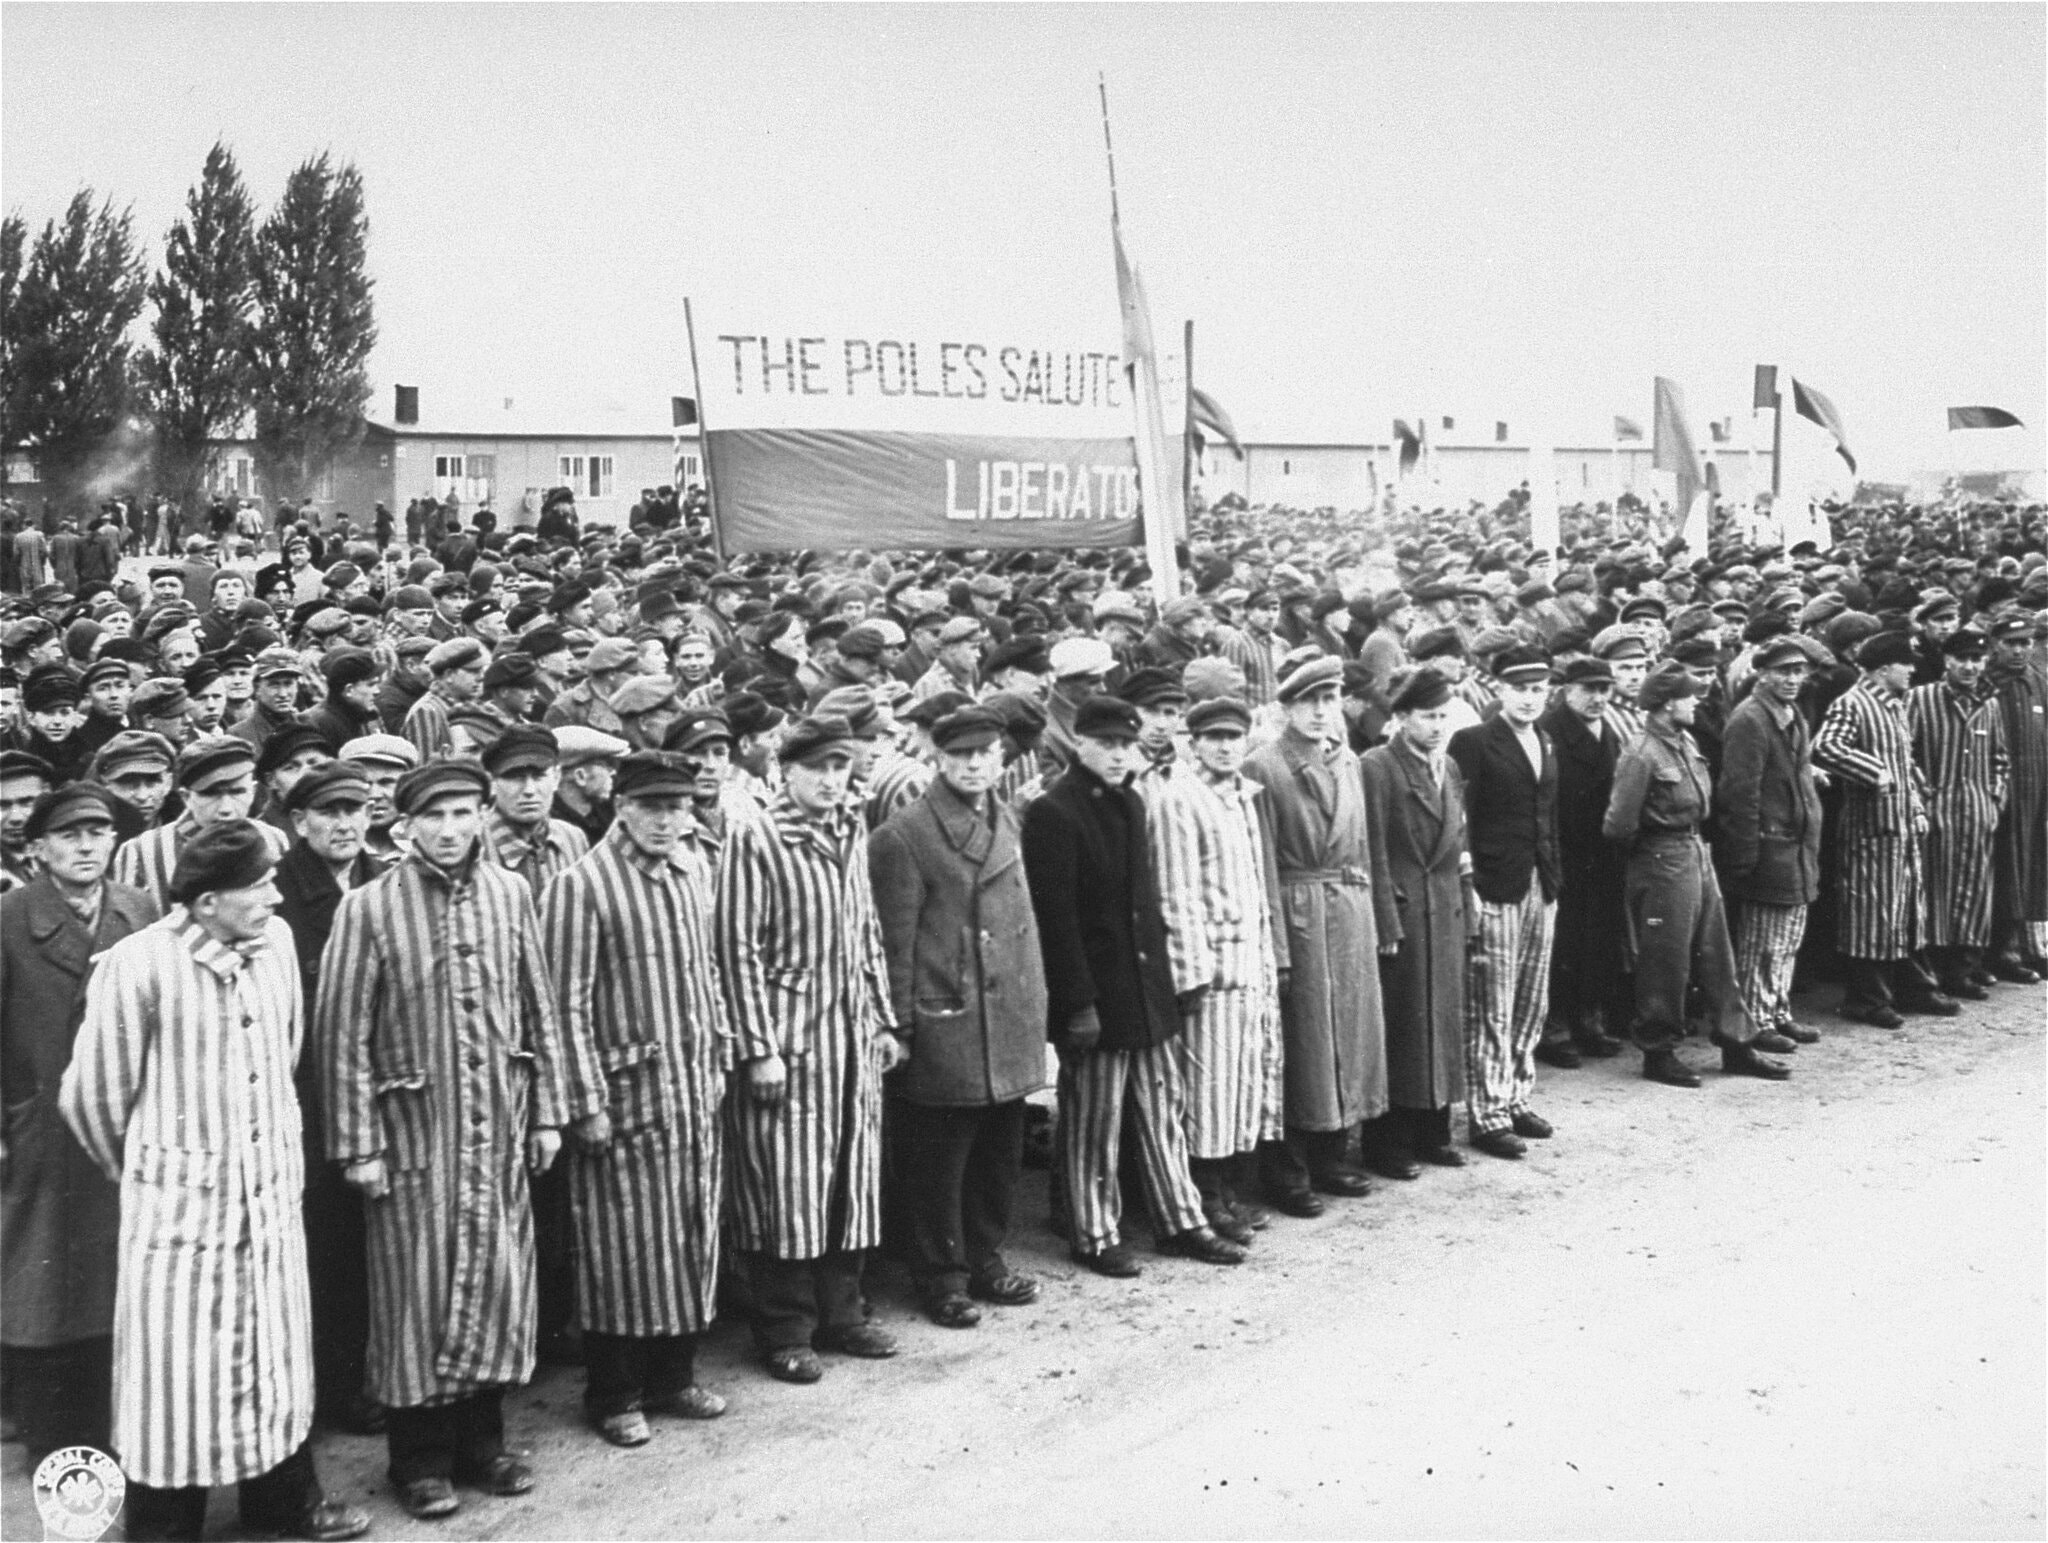 Survivors gather on May 3, 1945, to salute the Allies and to remember people who perished in Dachau.Credit...United States Holocaust Memorial Museum, Courtesy of National Archives and Records Administration, College Park